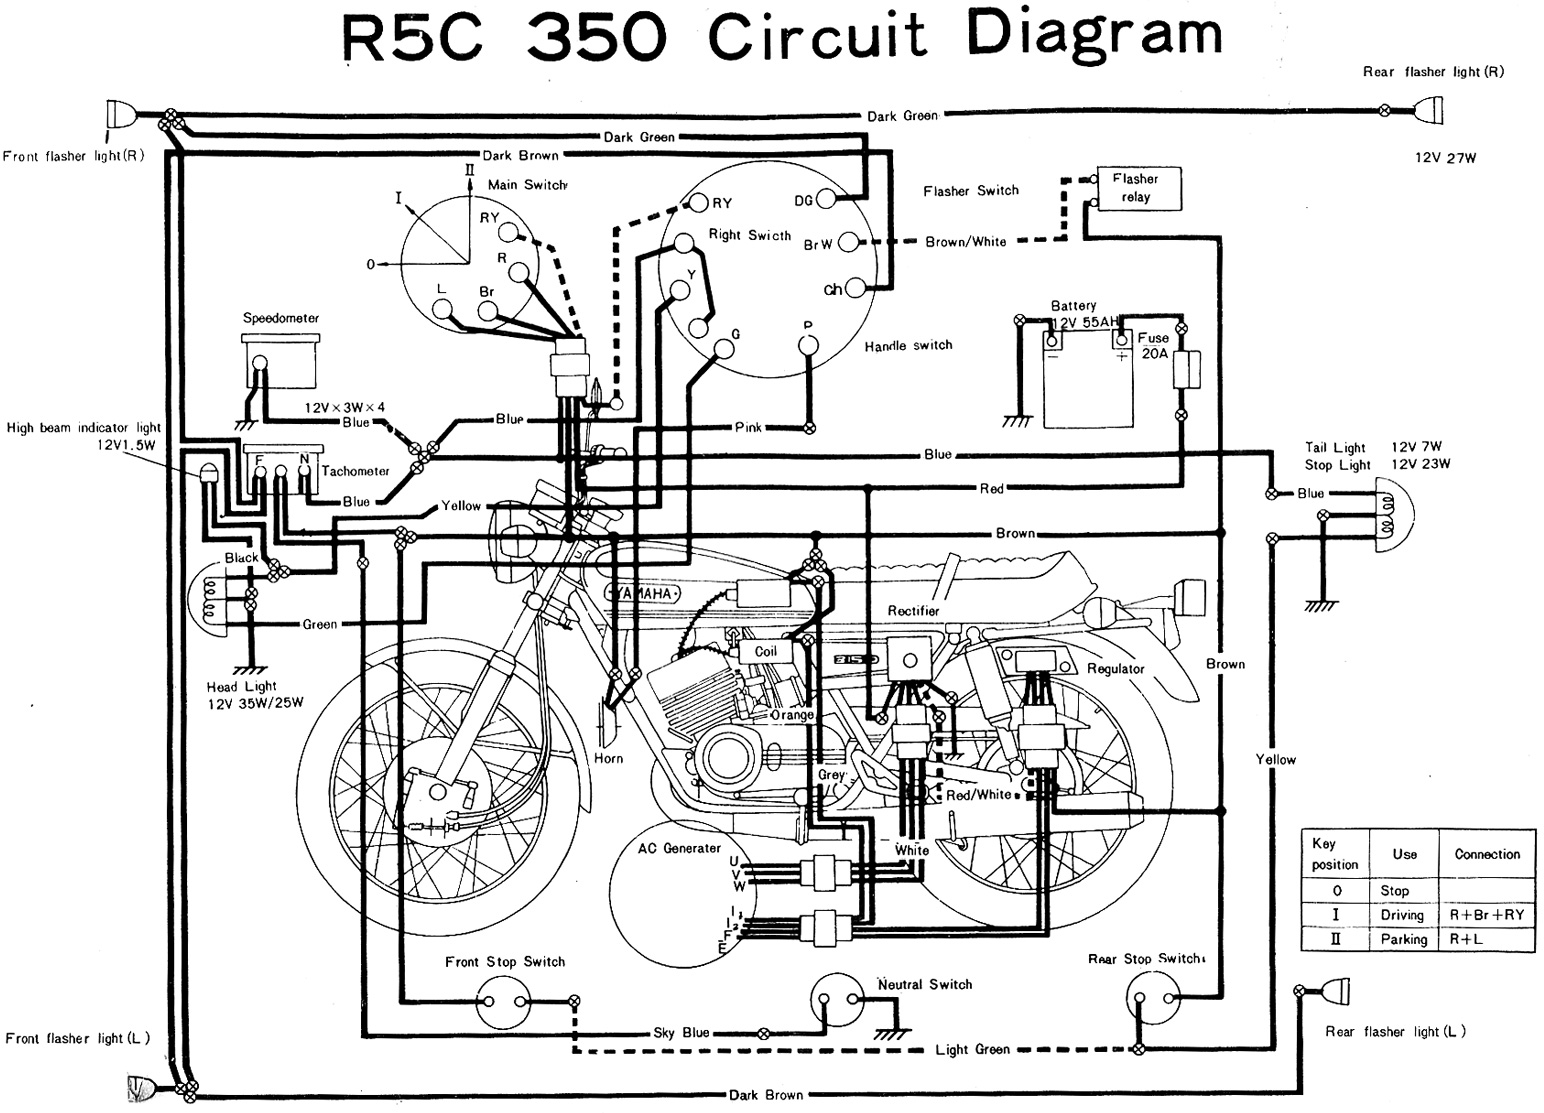 honda ace wiring diagram wiring diagrams and schematics honda shadow vt1100 wiring diagram and electrical system troubleshooting 85 95 gl650 500 1100 ignition switch interchangability